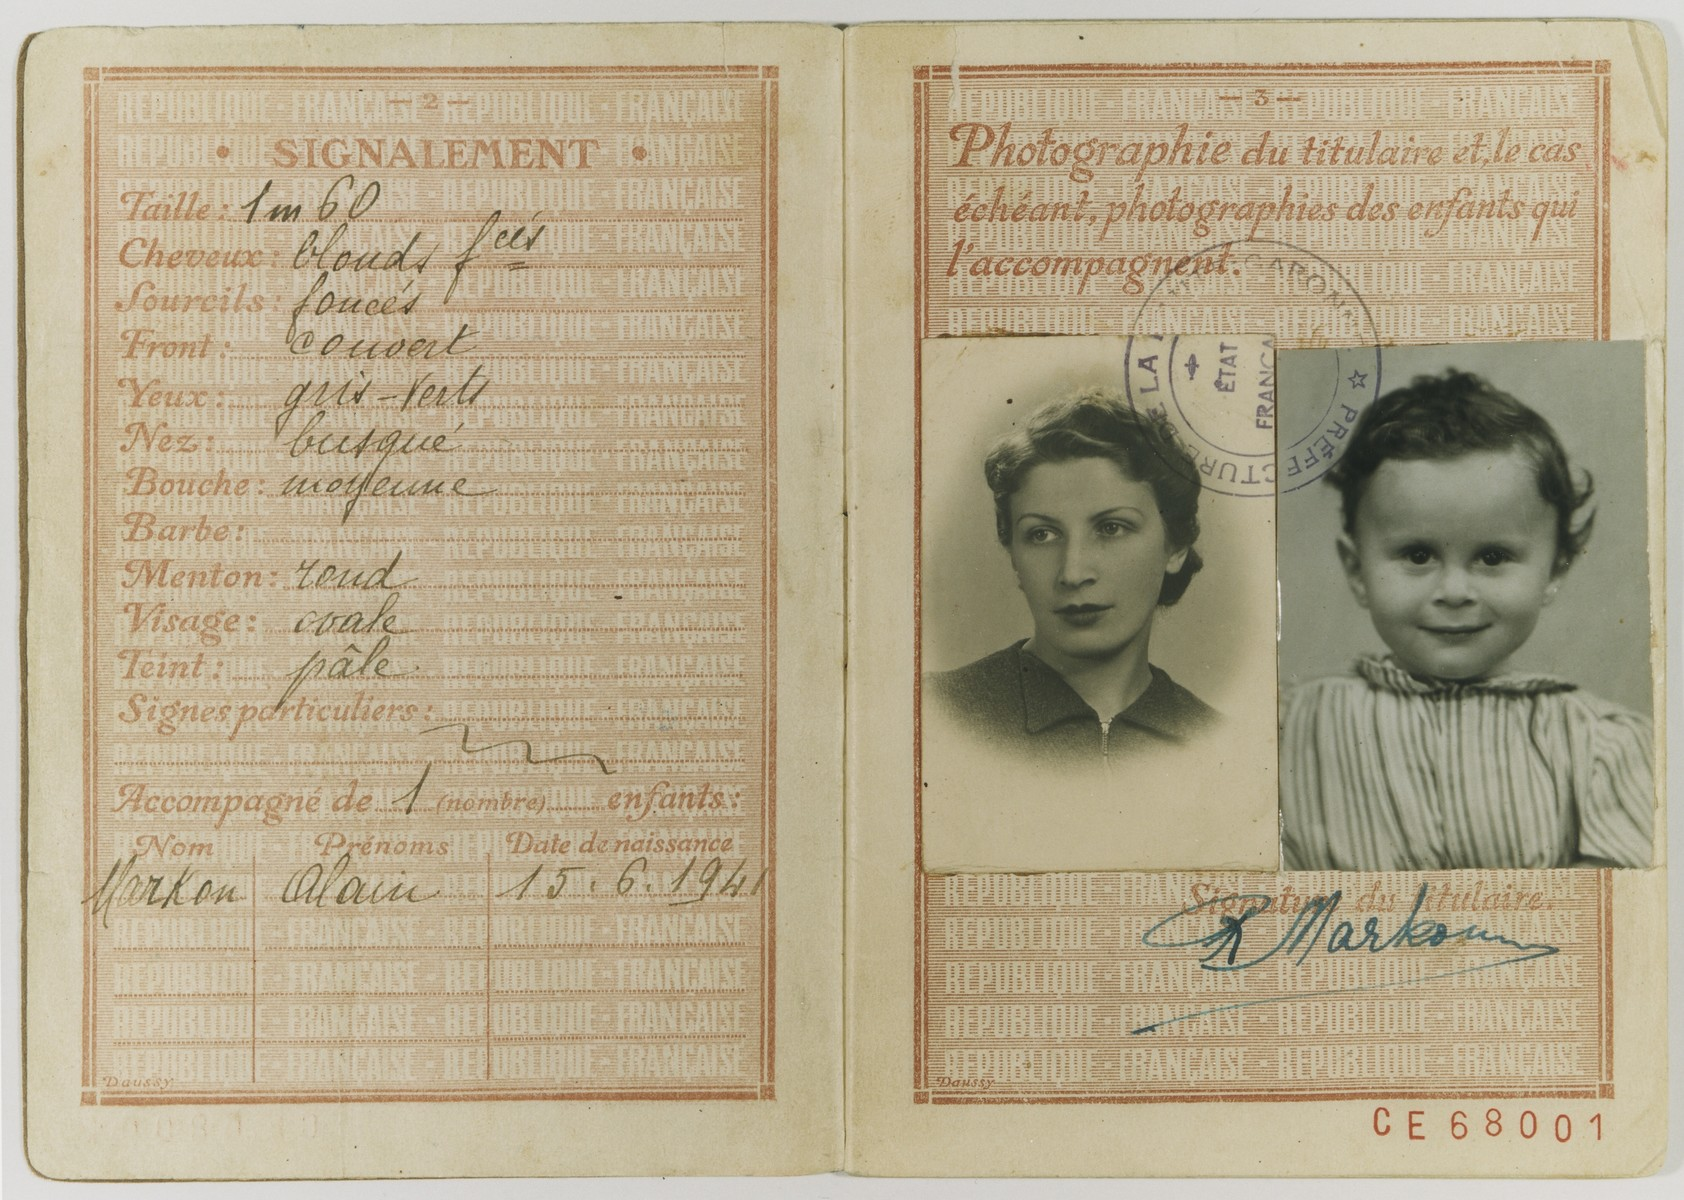 A page of a passport issued to Raya Markon, a Jewish emigre from Vilna, and her son, Alain.